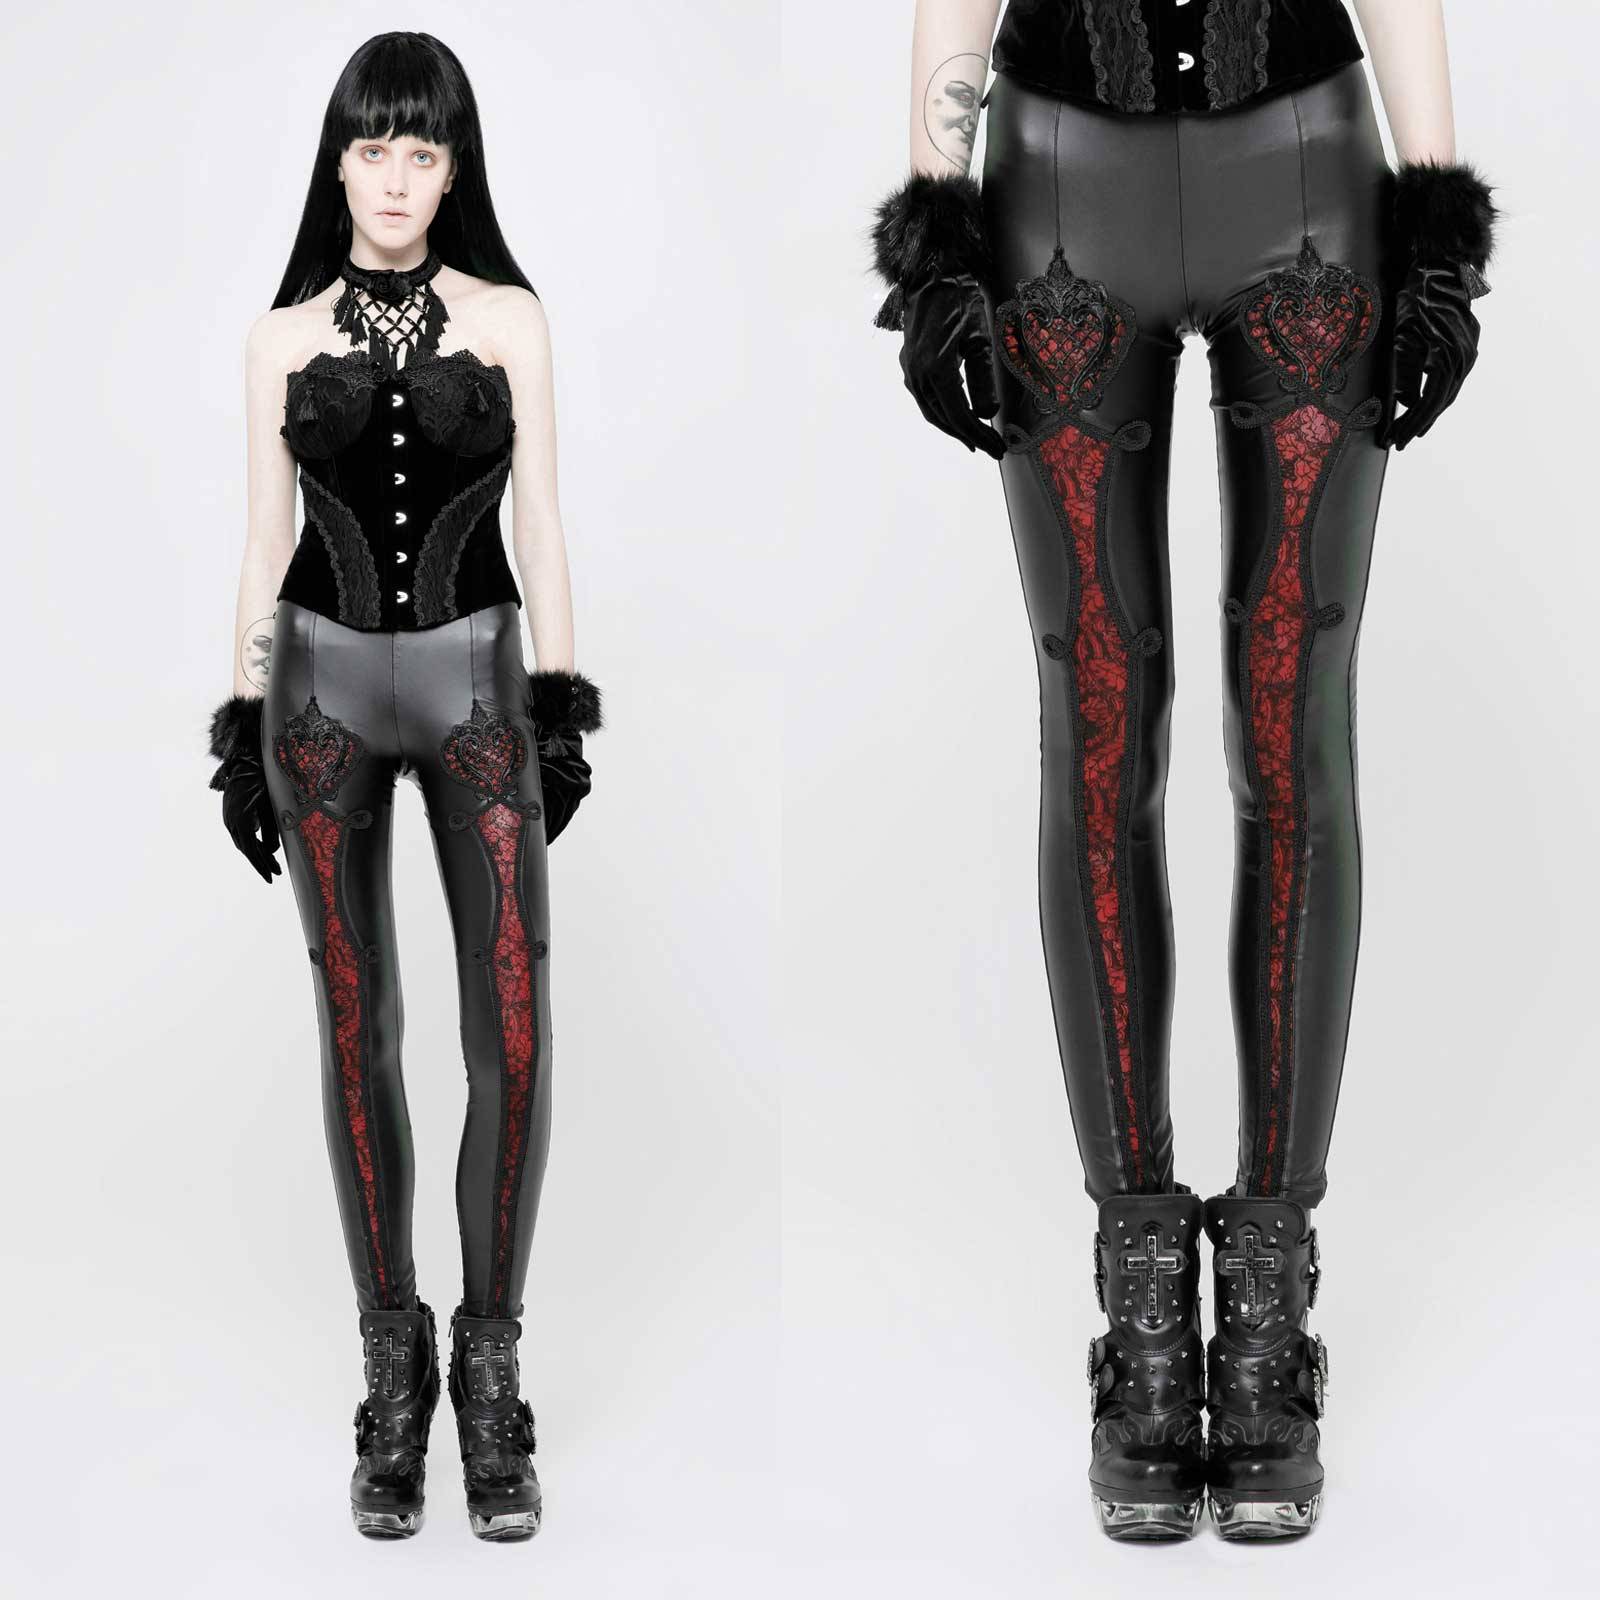 f45ff2503cf Detail image to PUNK RAVE Gothic Love Leggings Black-Red